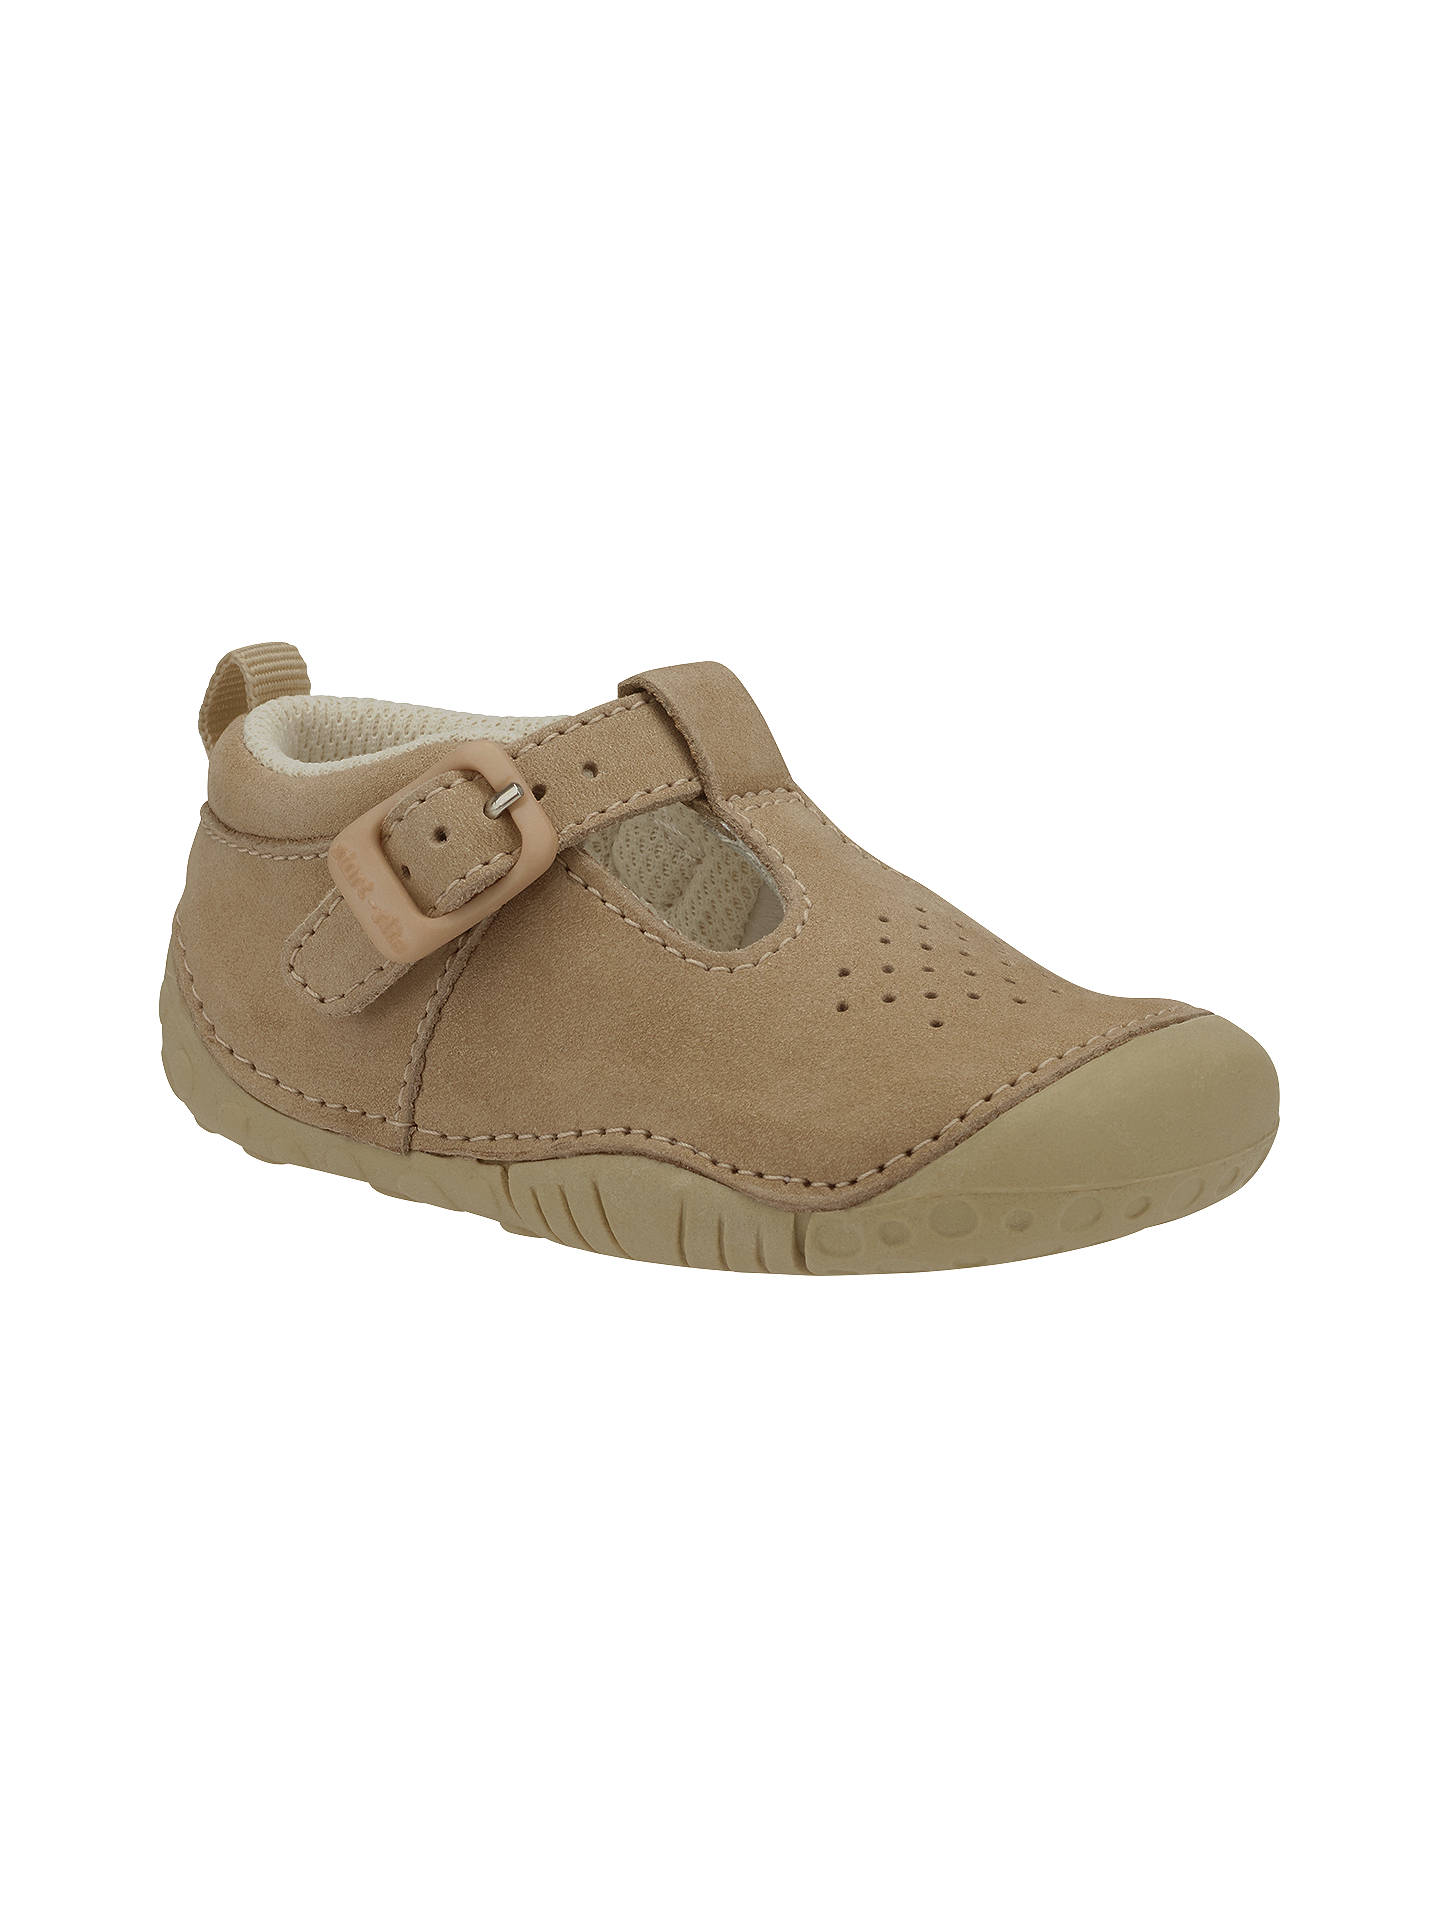 BuyStart-Rite Children's Baby Jack First Shoes, Brown, 2E Jnr Online at johnlewis.com